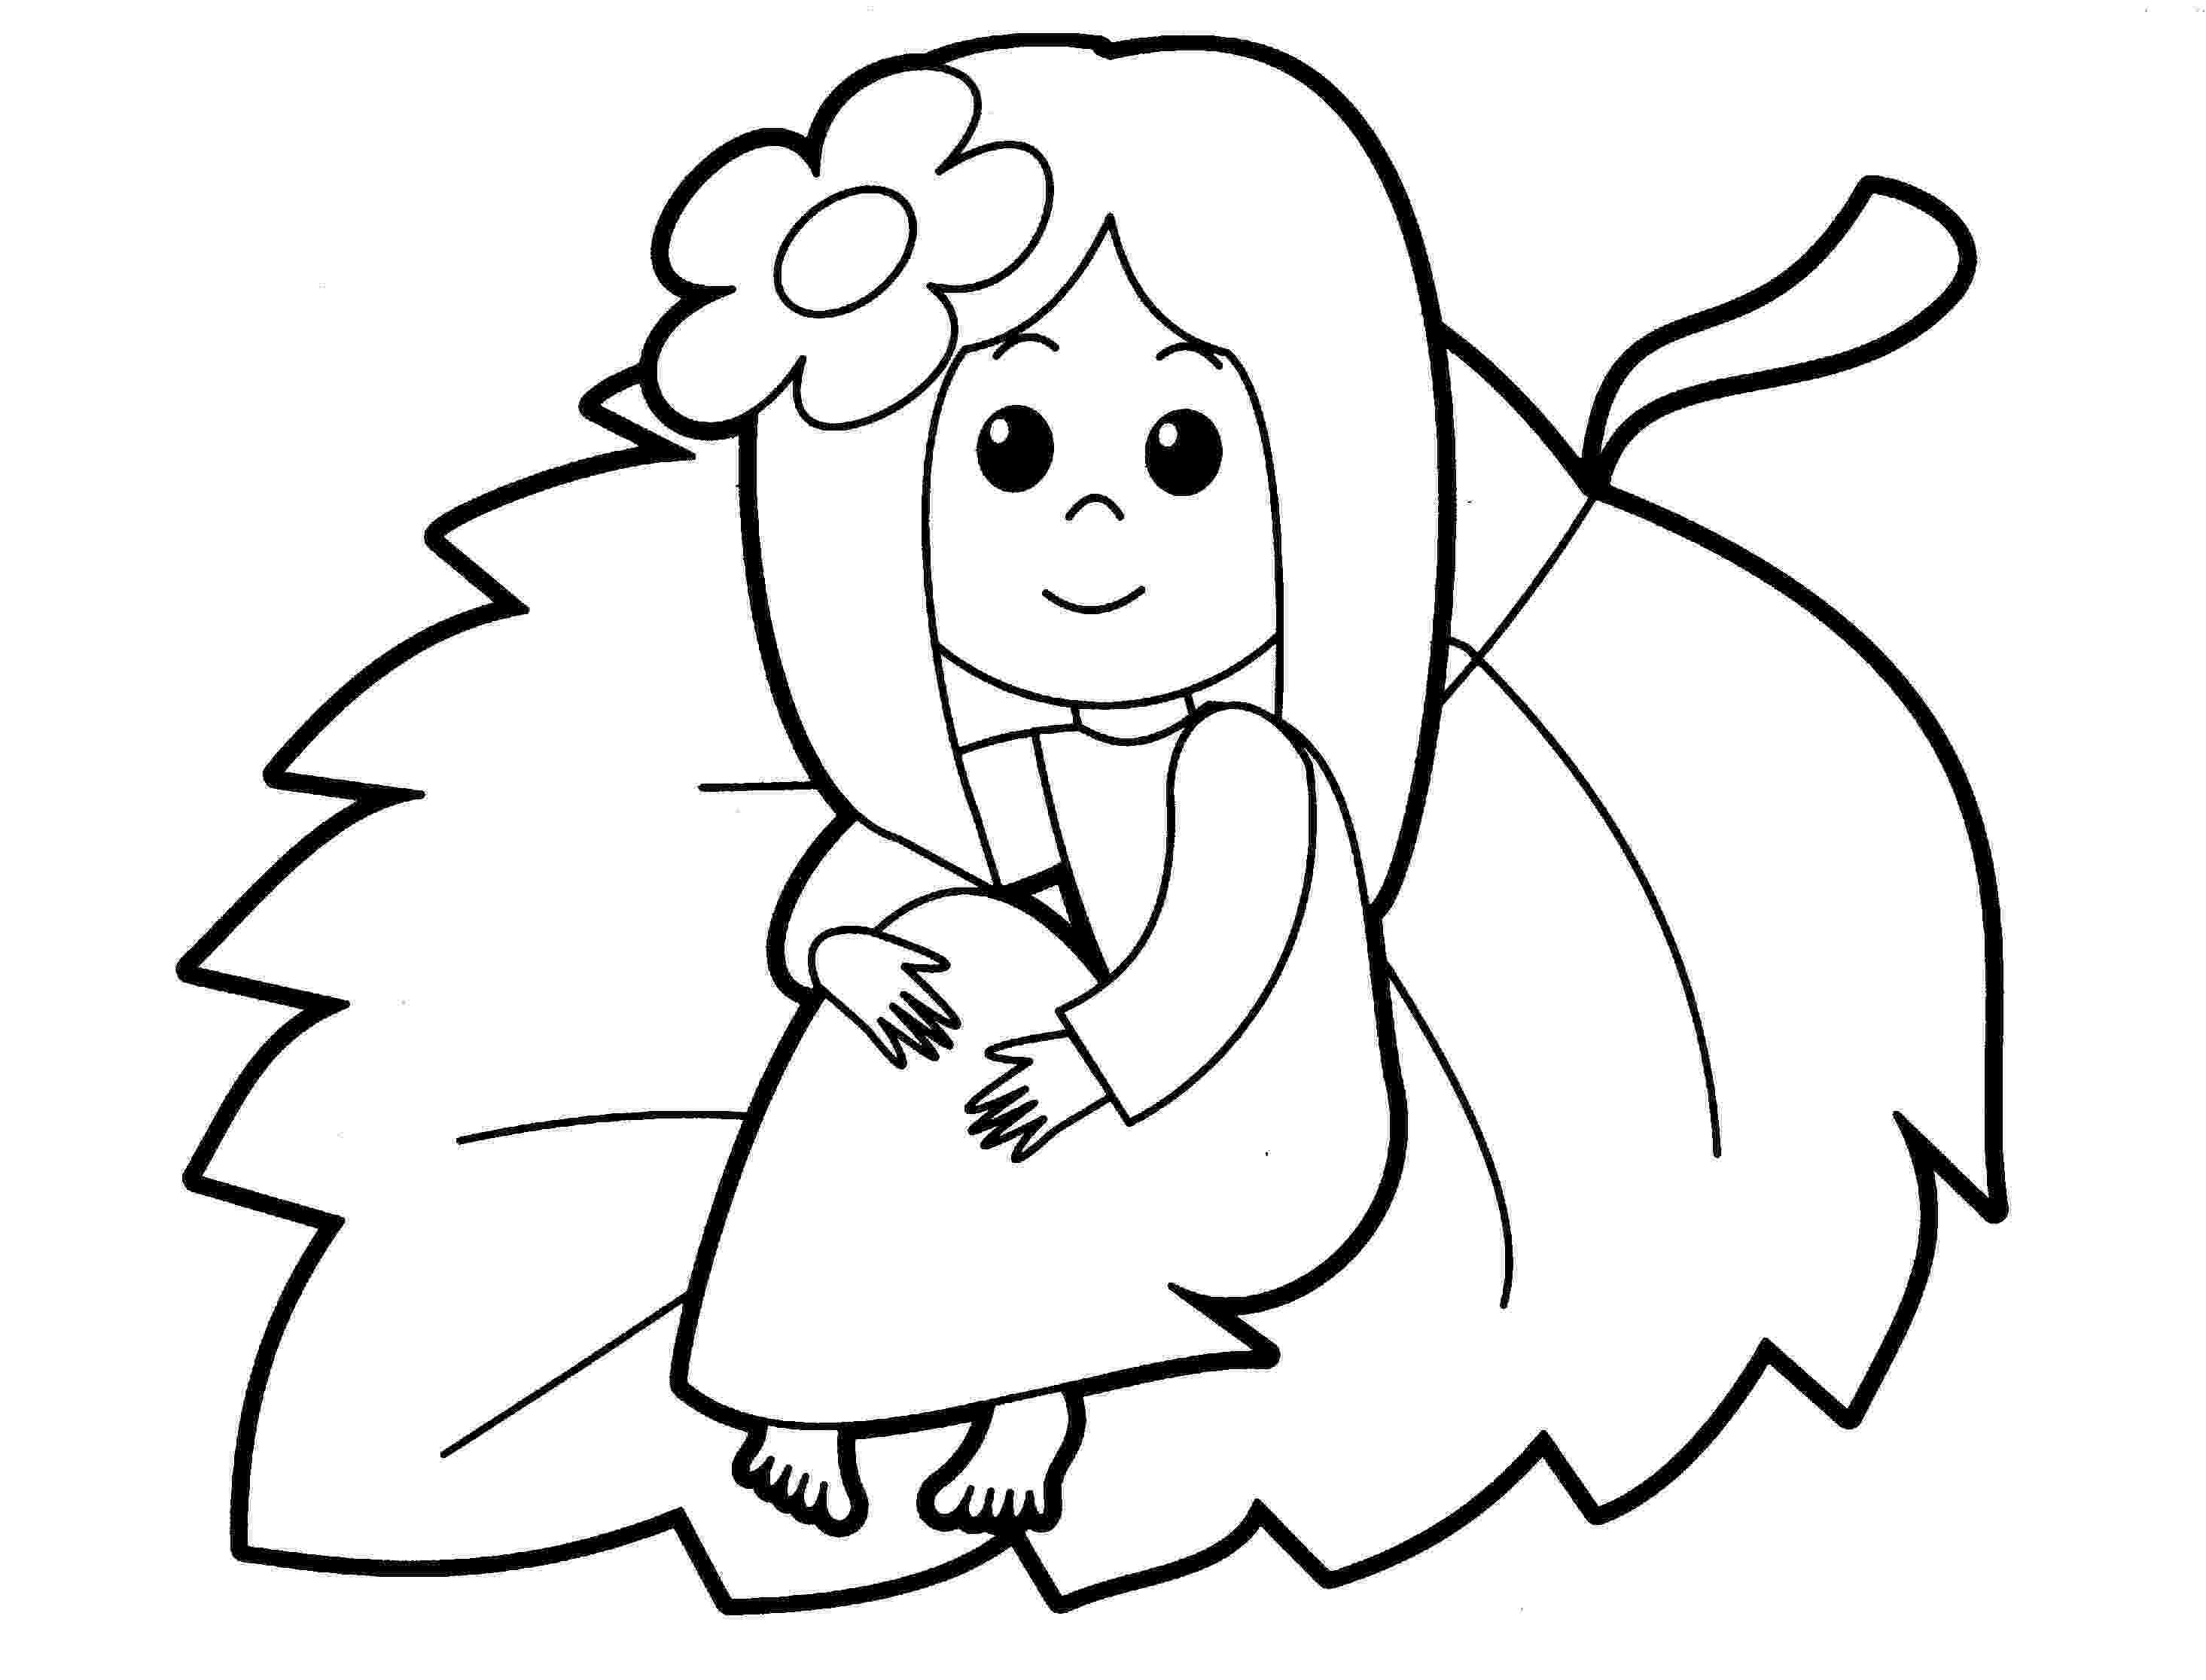 babies coloring pages free printable baby coloring pages for kids pages coloring babies 1 2